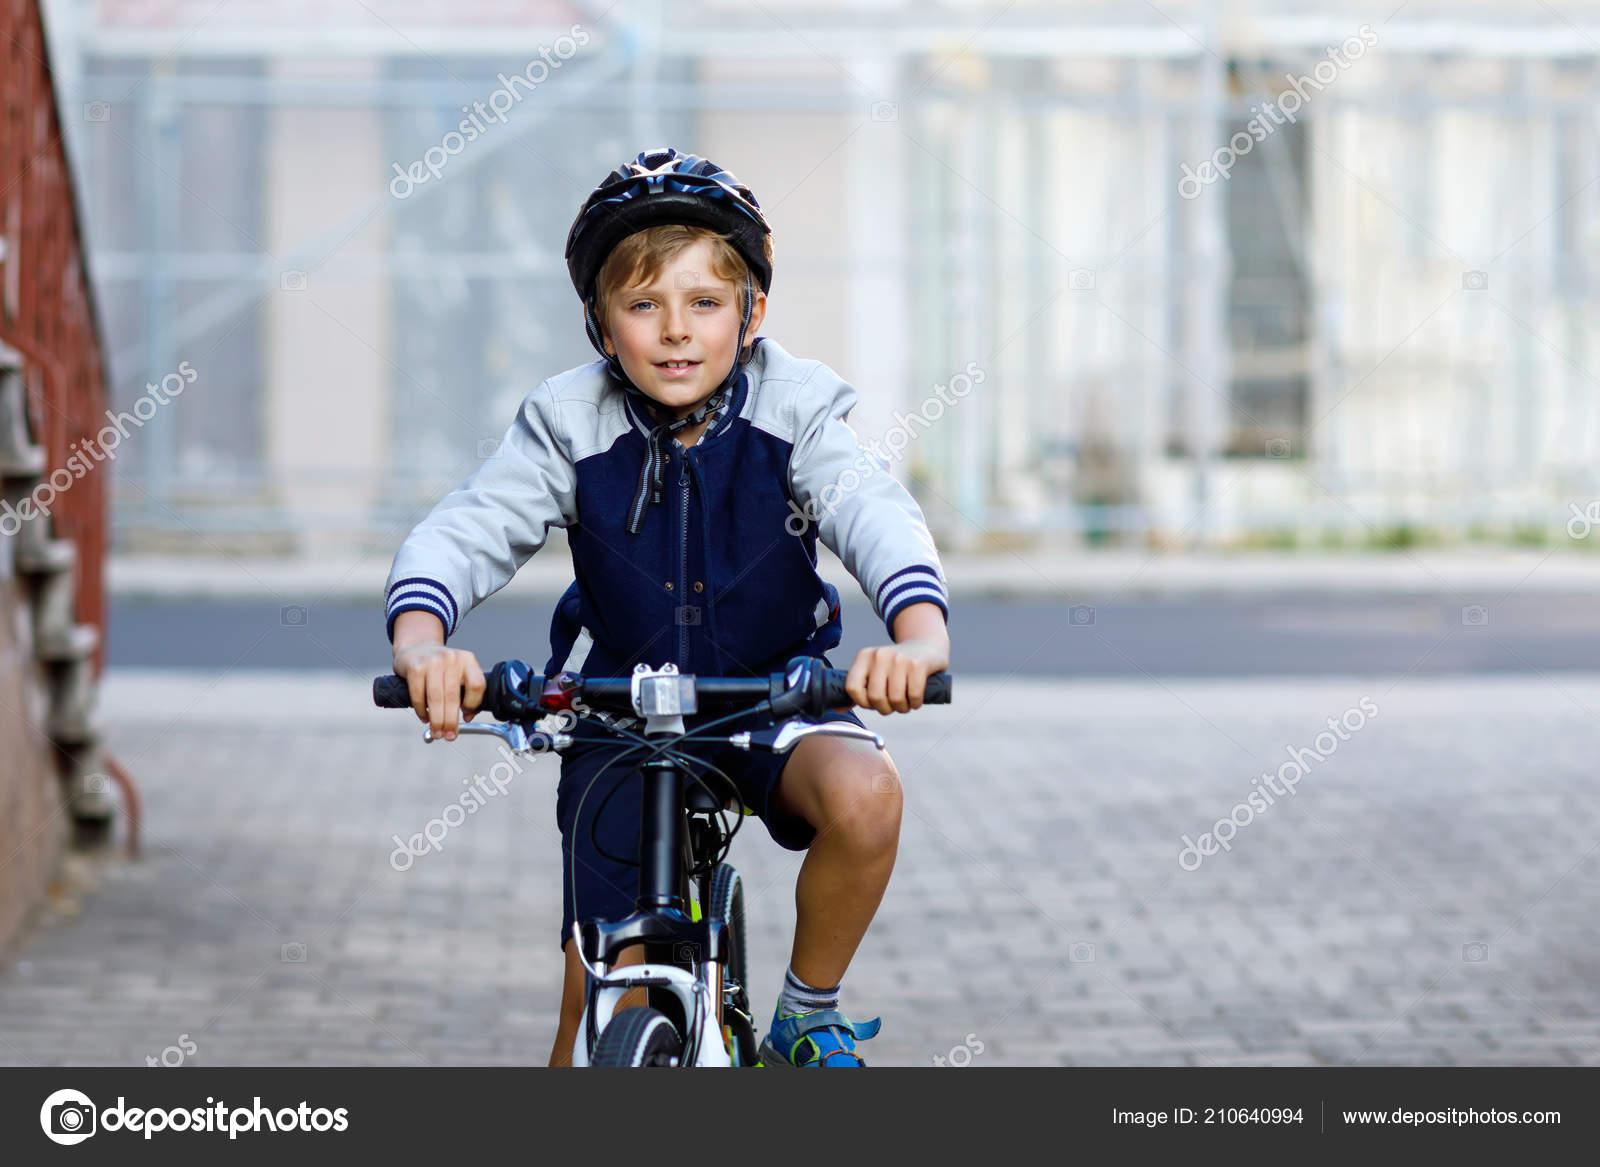 Schoolkid Boy In Safety Helmet Riding With Bike In The City With Backpack Happy Child In Colorful Clothes Biking On Bicycle On Way To School Safe Way For Kids Outdoors To School